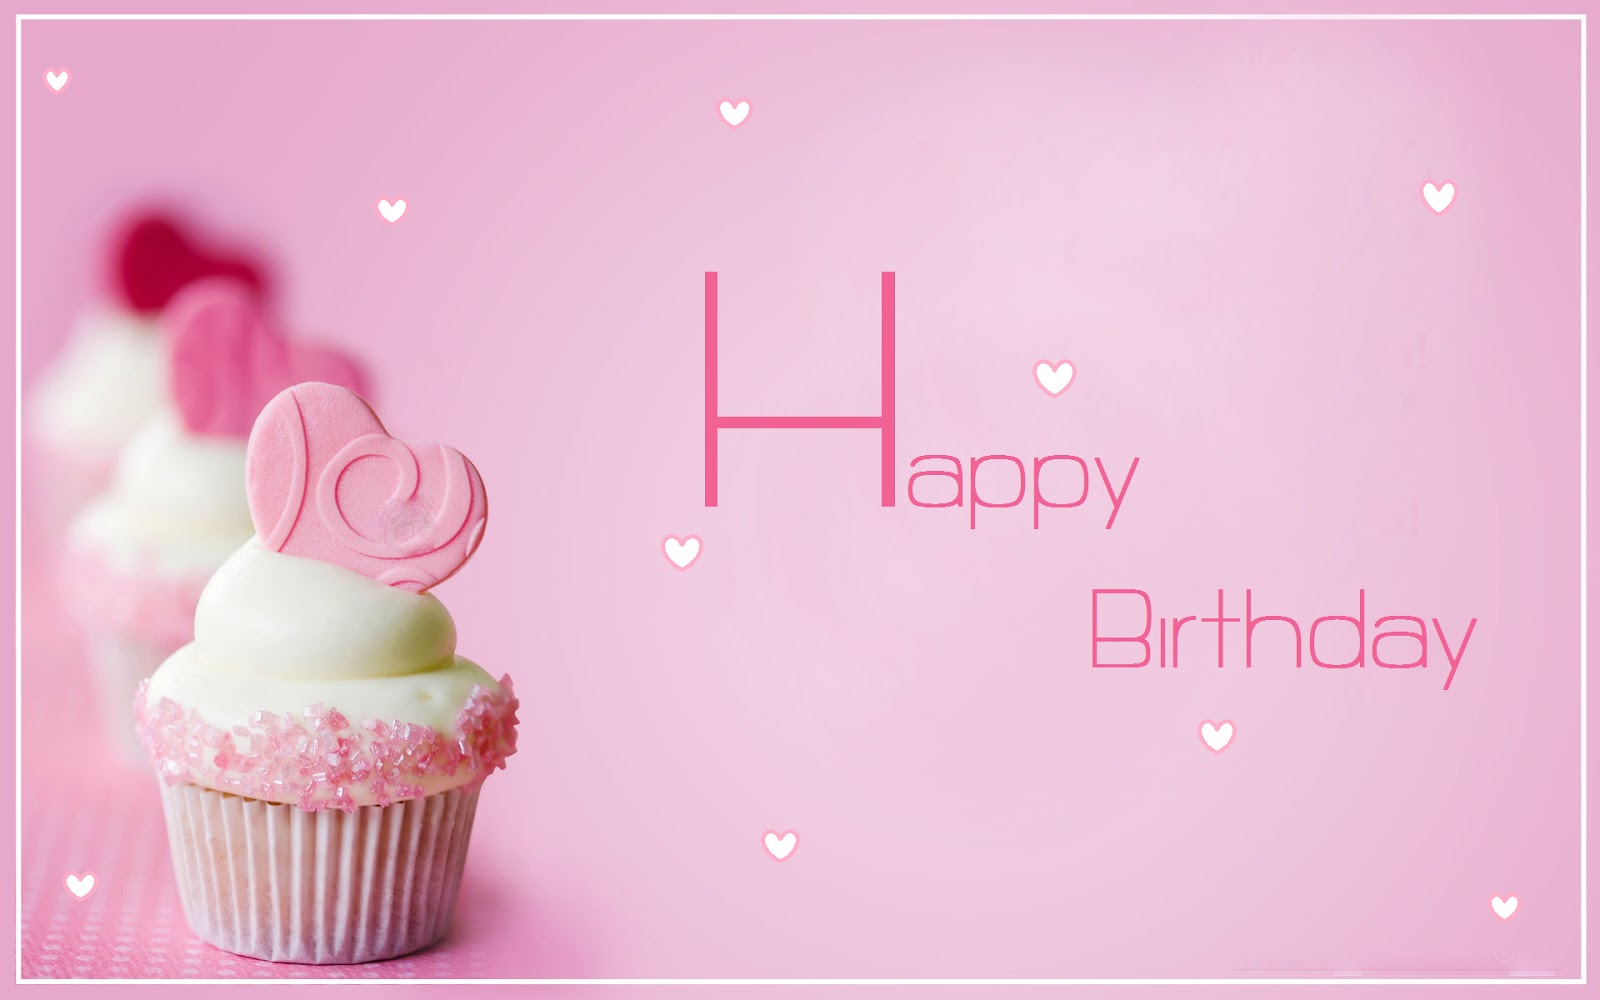 happy bday wallpaper ; Happy-birthday-pink-background-with-little-hearts-for-girls-image